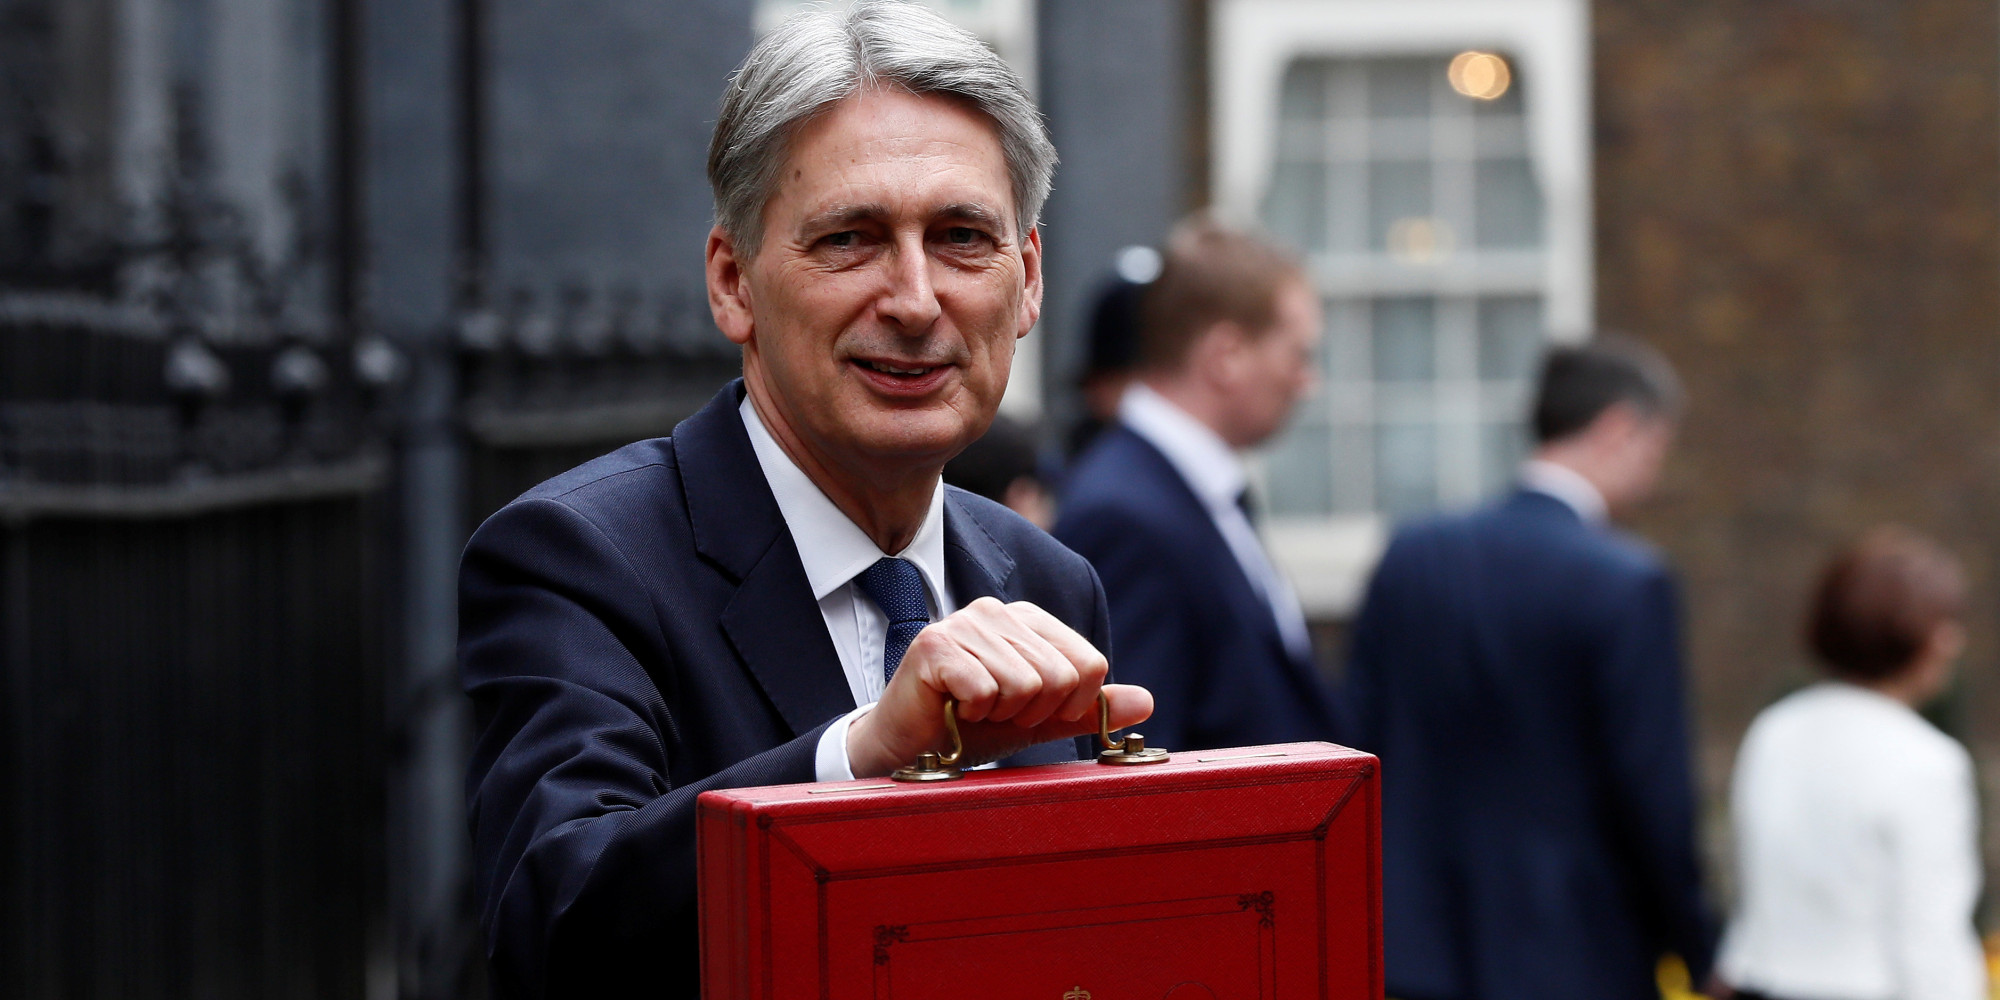 huffingtonpost.co.uk - A Bold Government Would Use The Budget To Truly Unlock The Northern Powerhouse